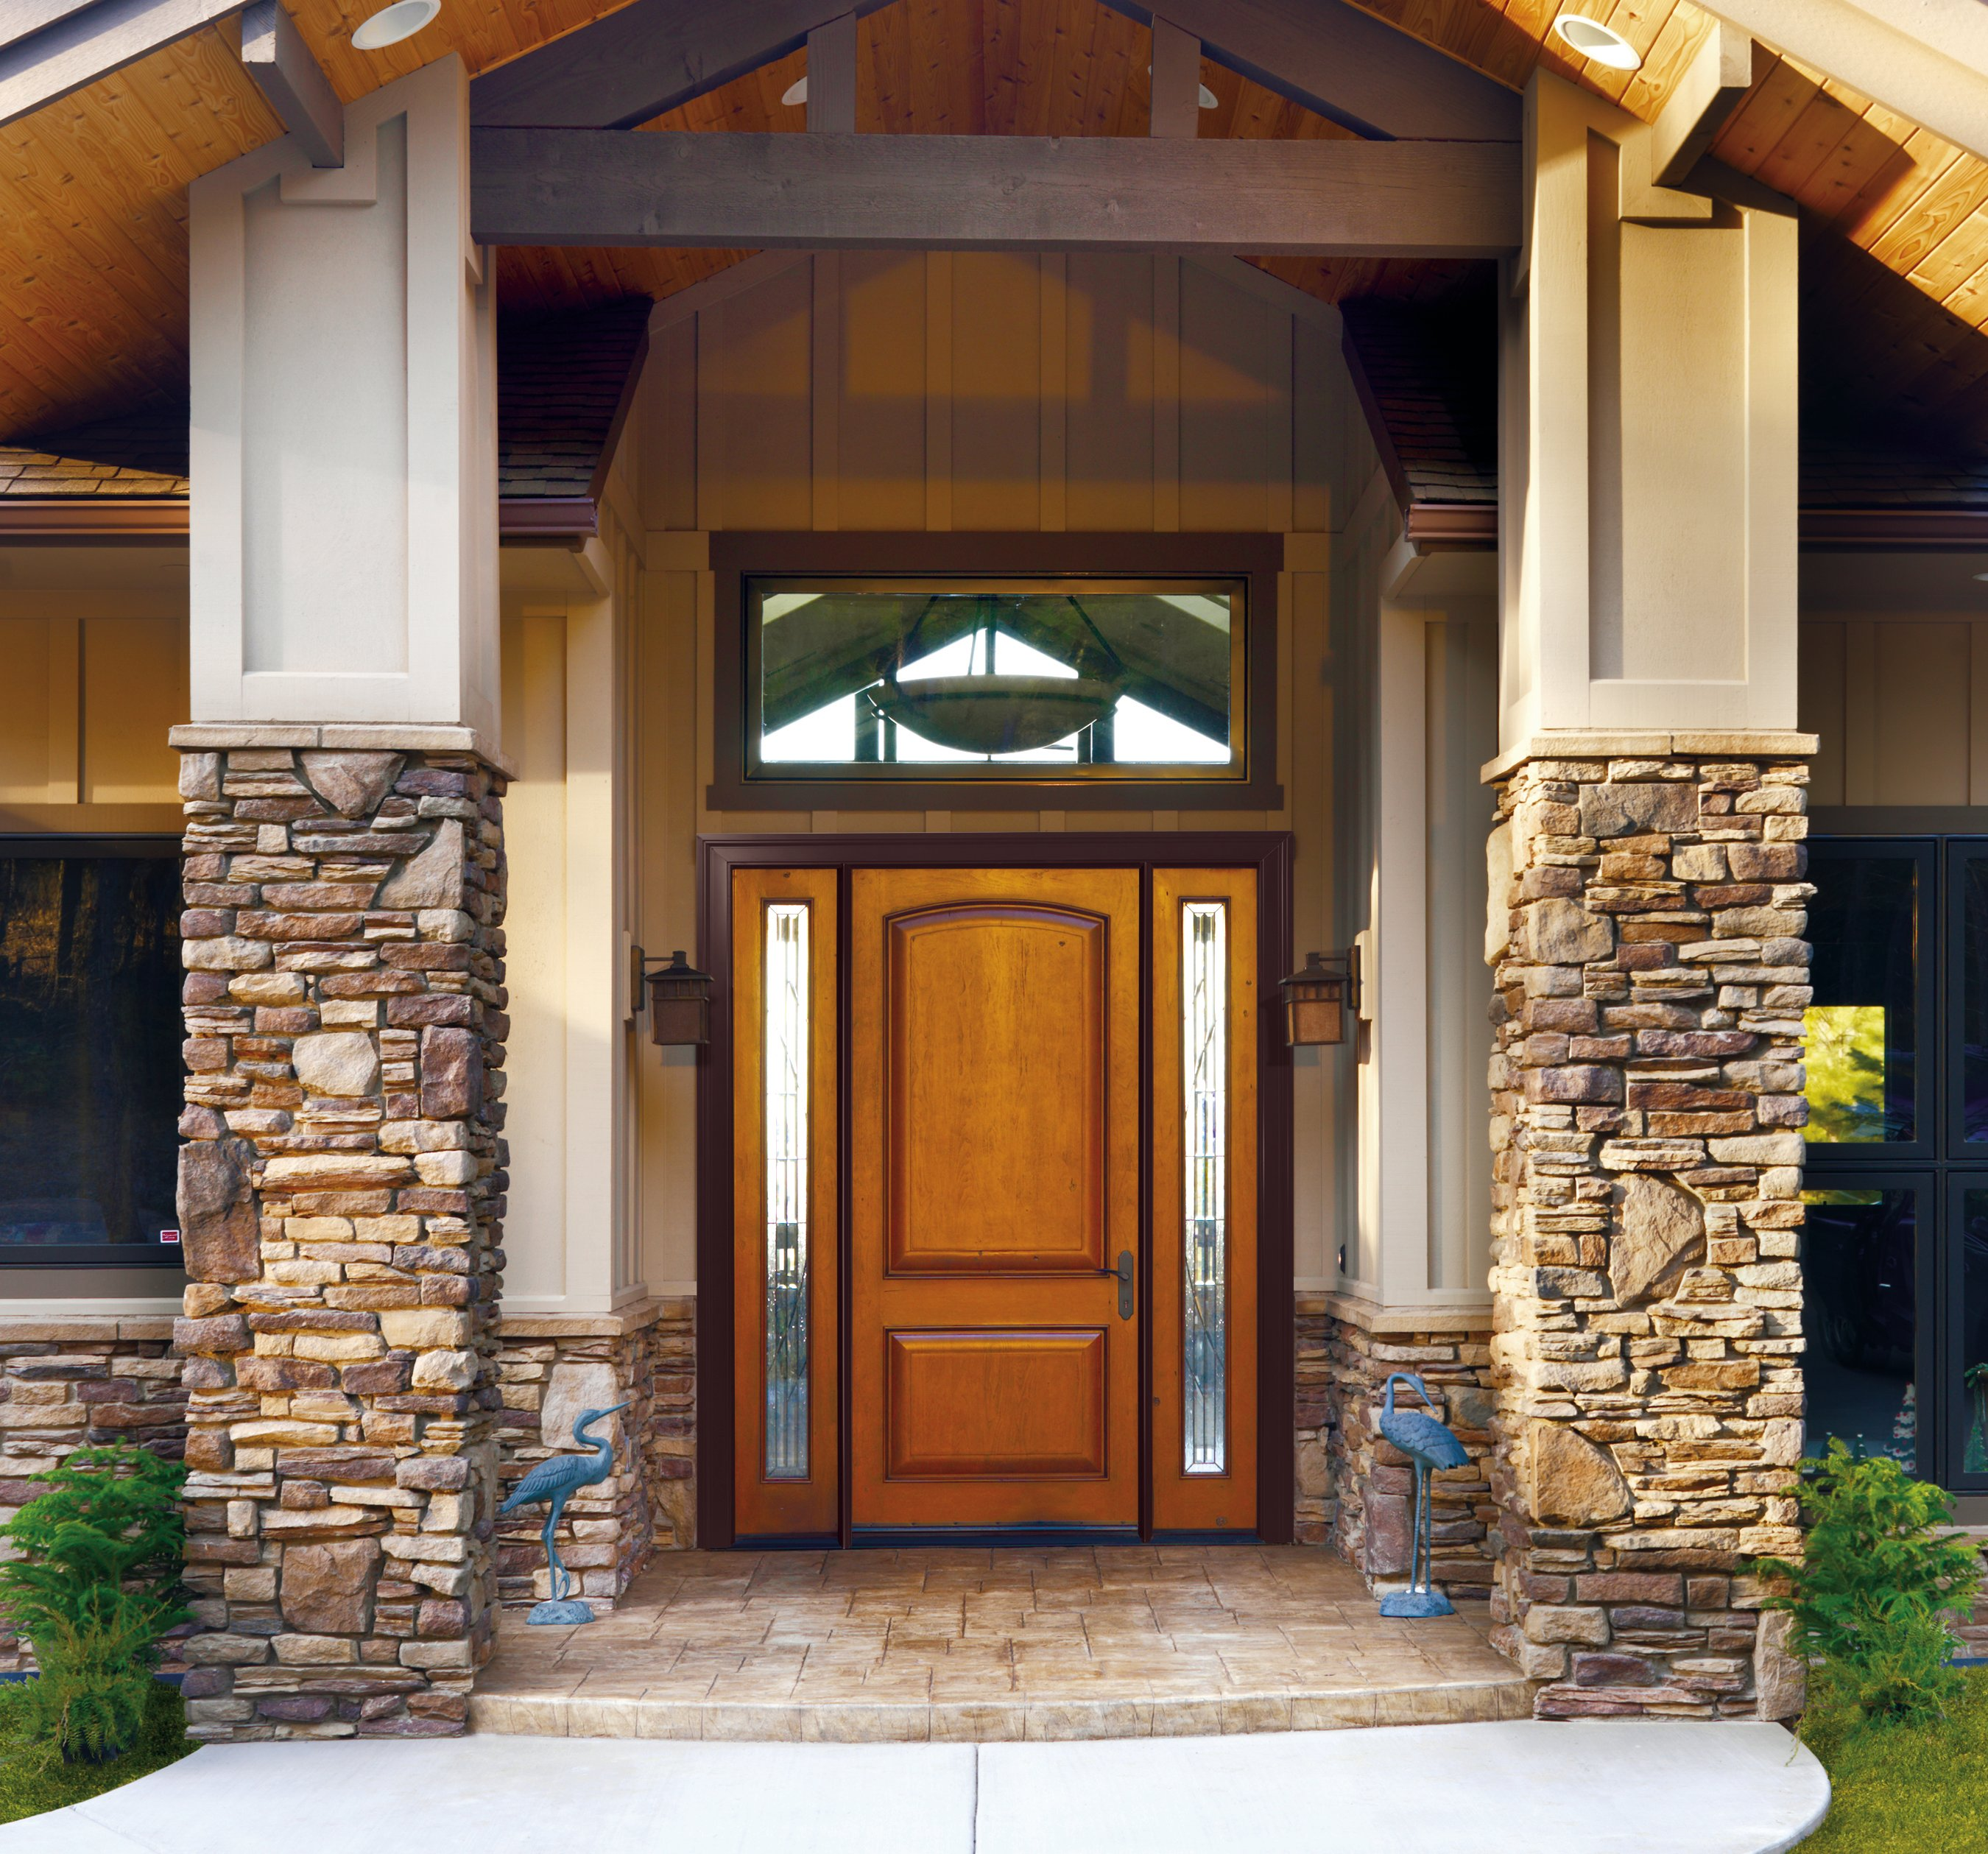 2518 #AB6920 Jeld Wen Clad Door Frames Remodeling Doors Wood Entryway  pic Clad Wood Doors 47212700